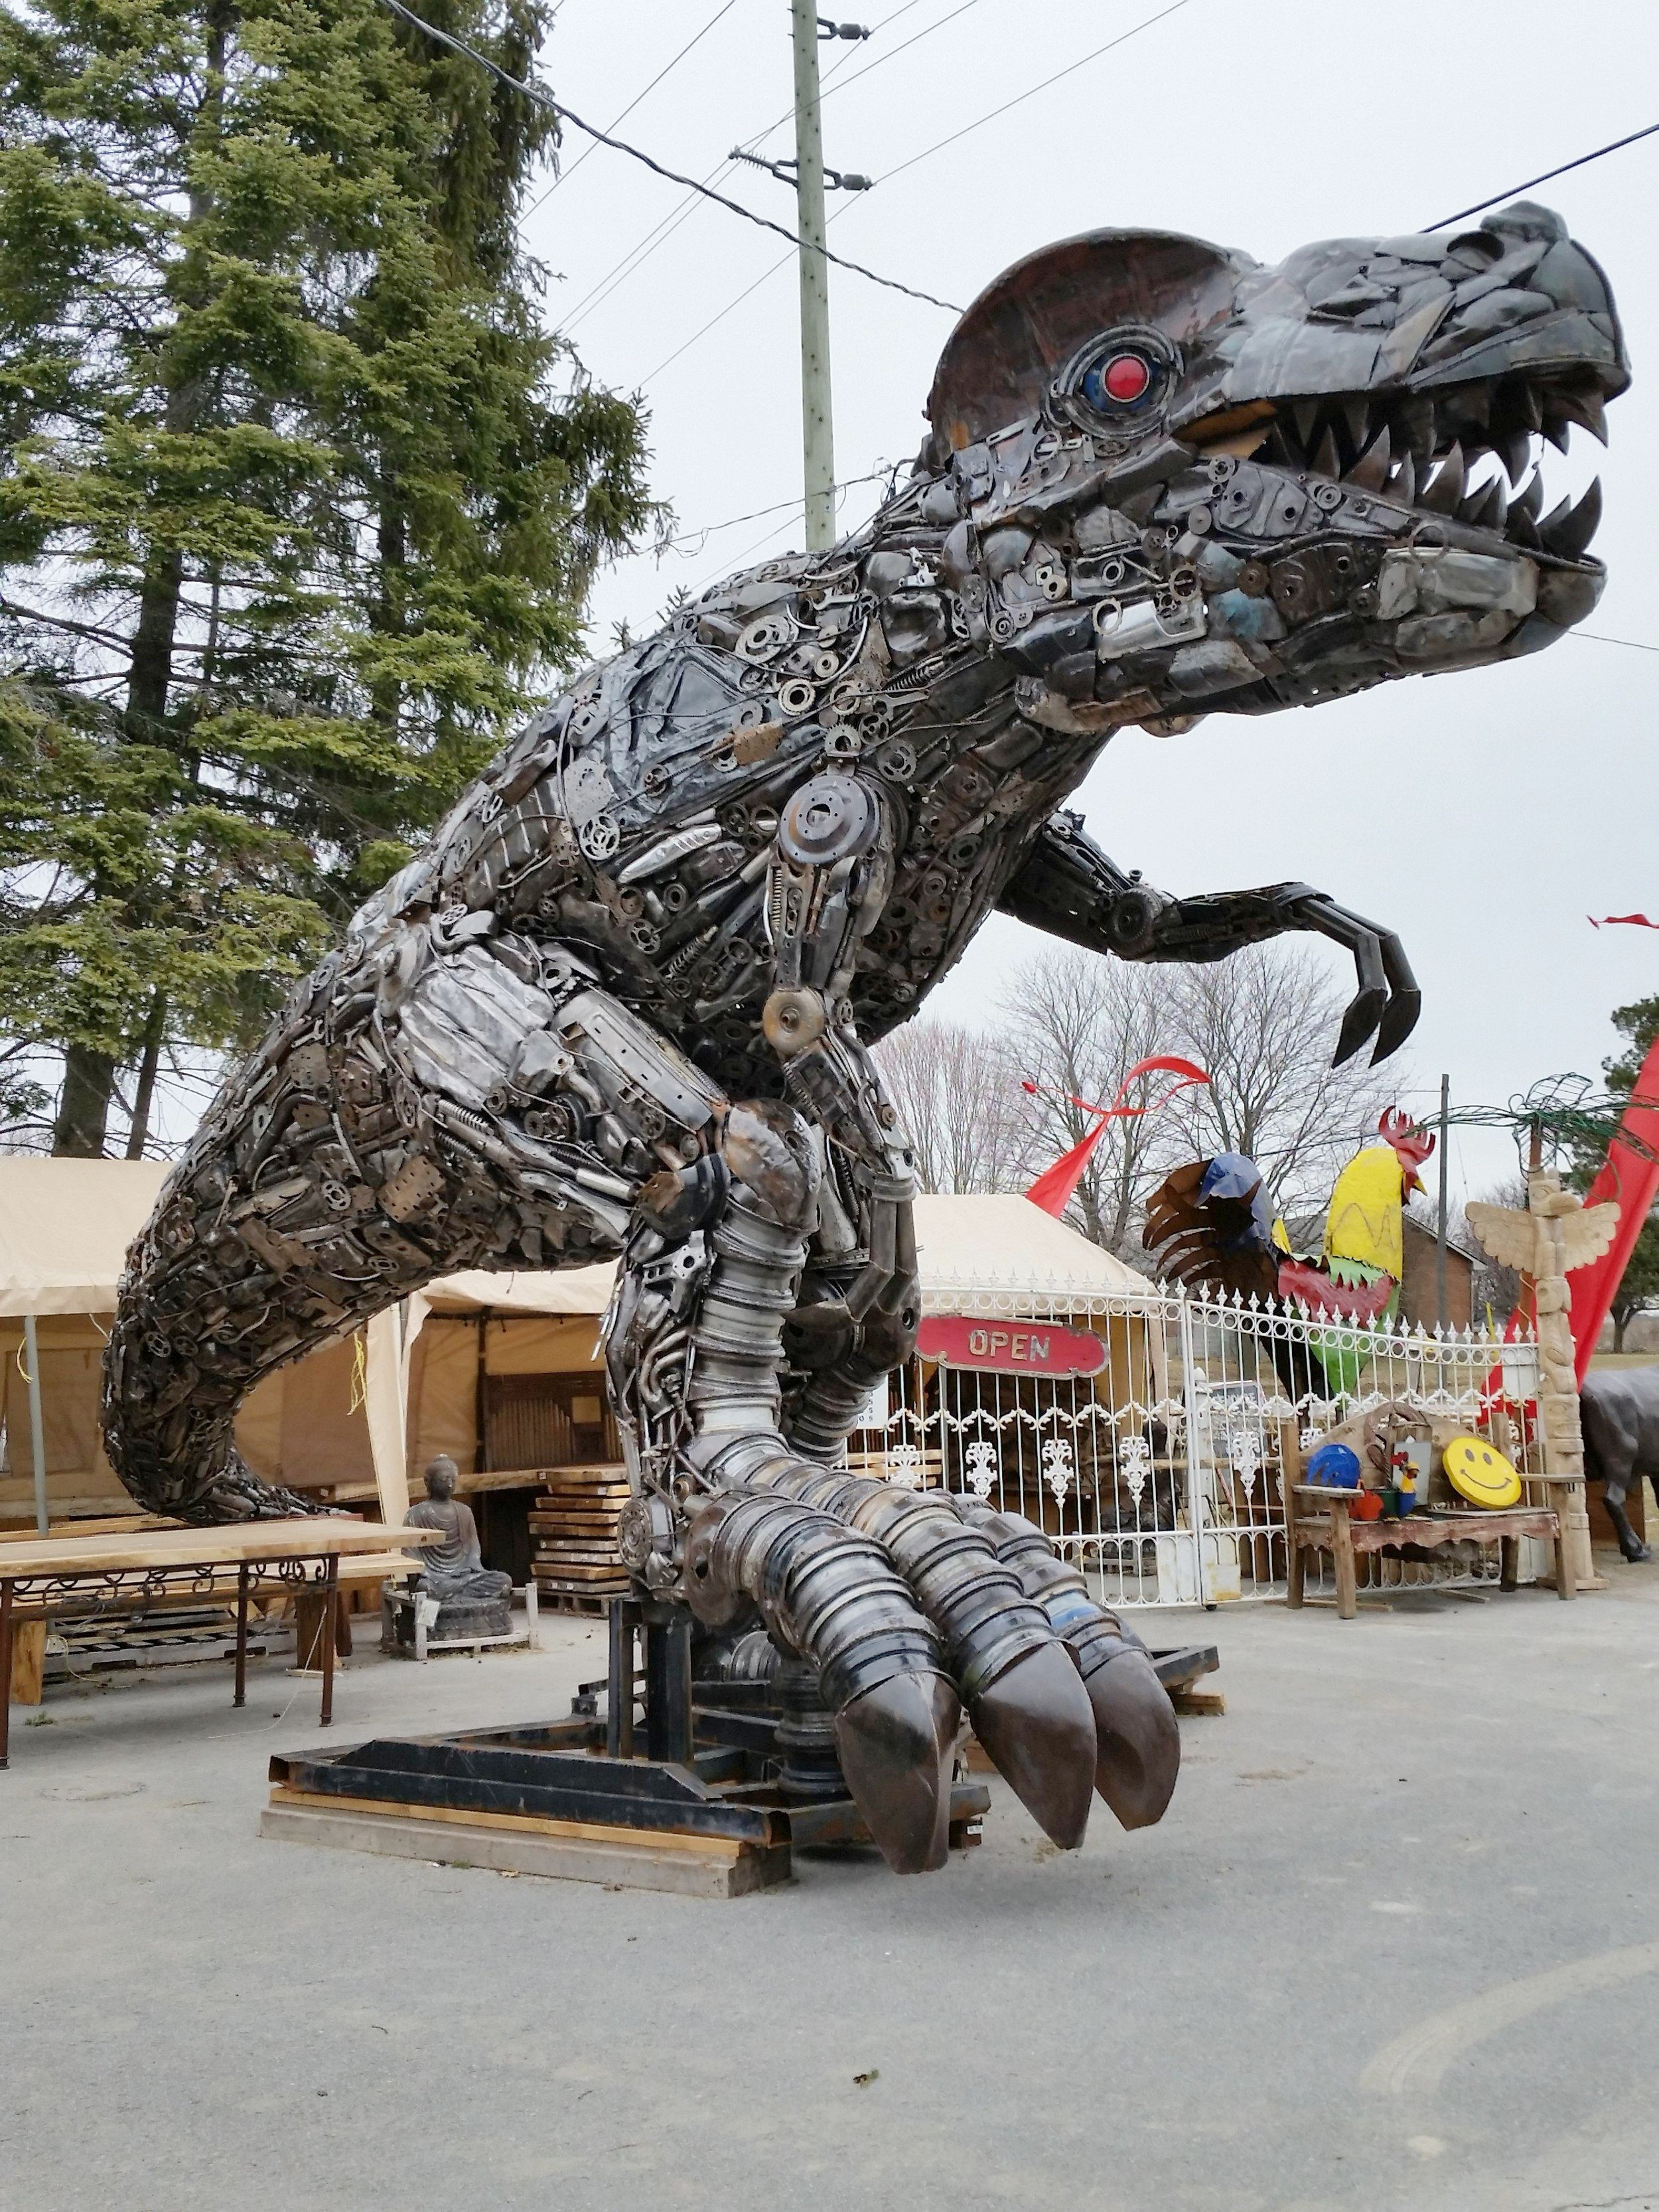 One of the three dinosaurs at Primitive Designs, over 20 feet tall and made from recycled auto parts.